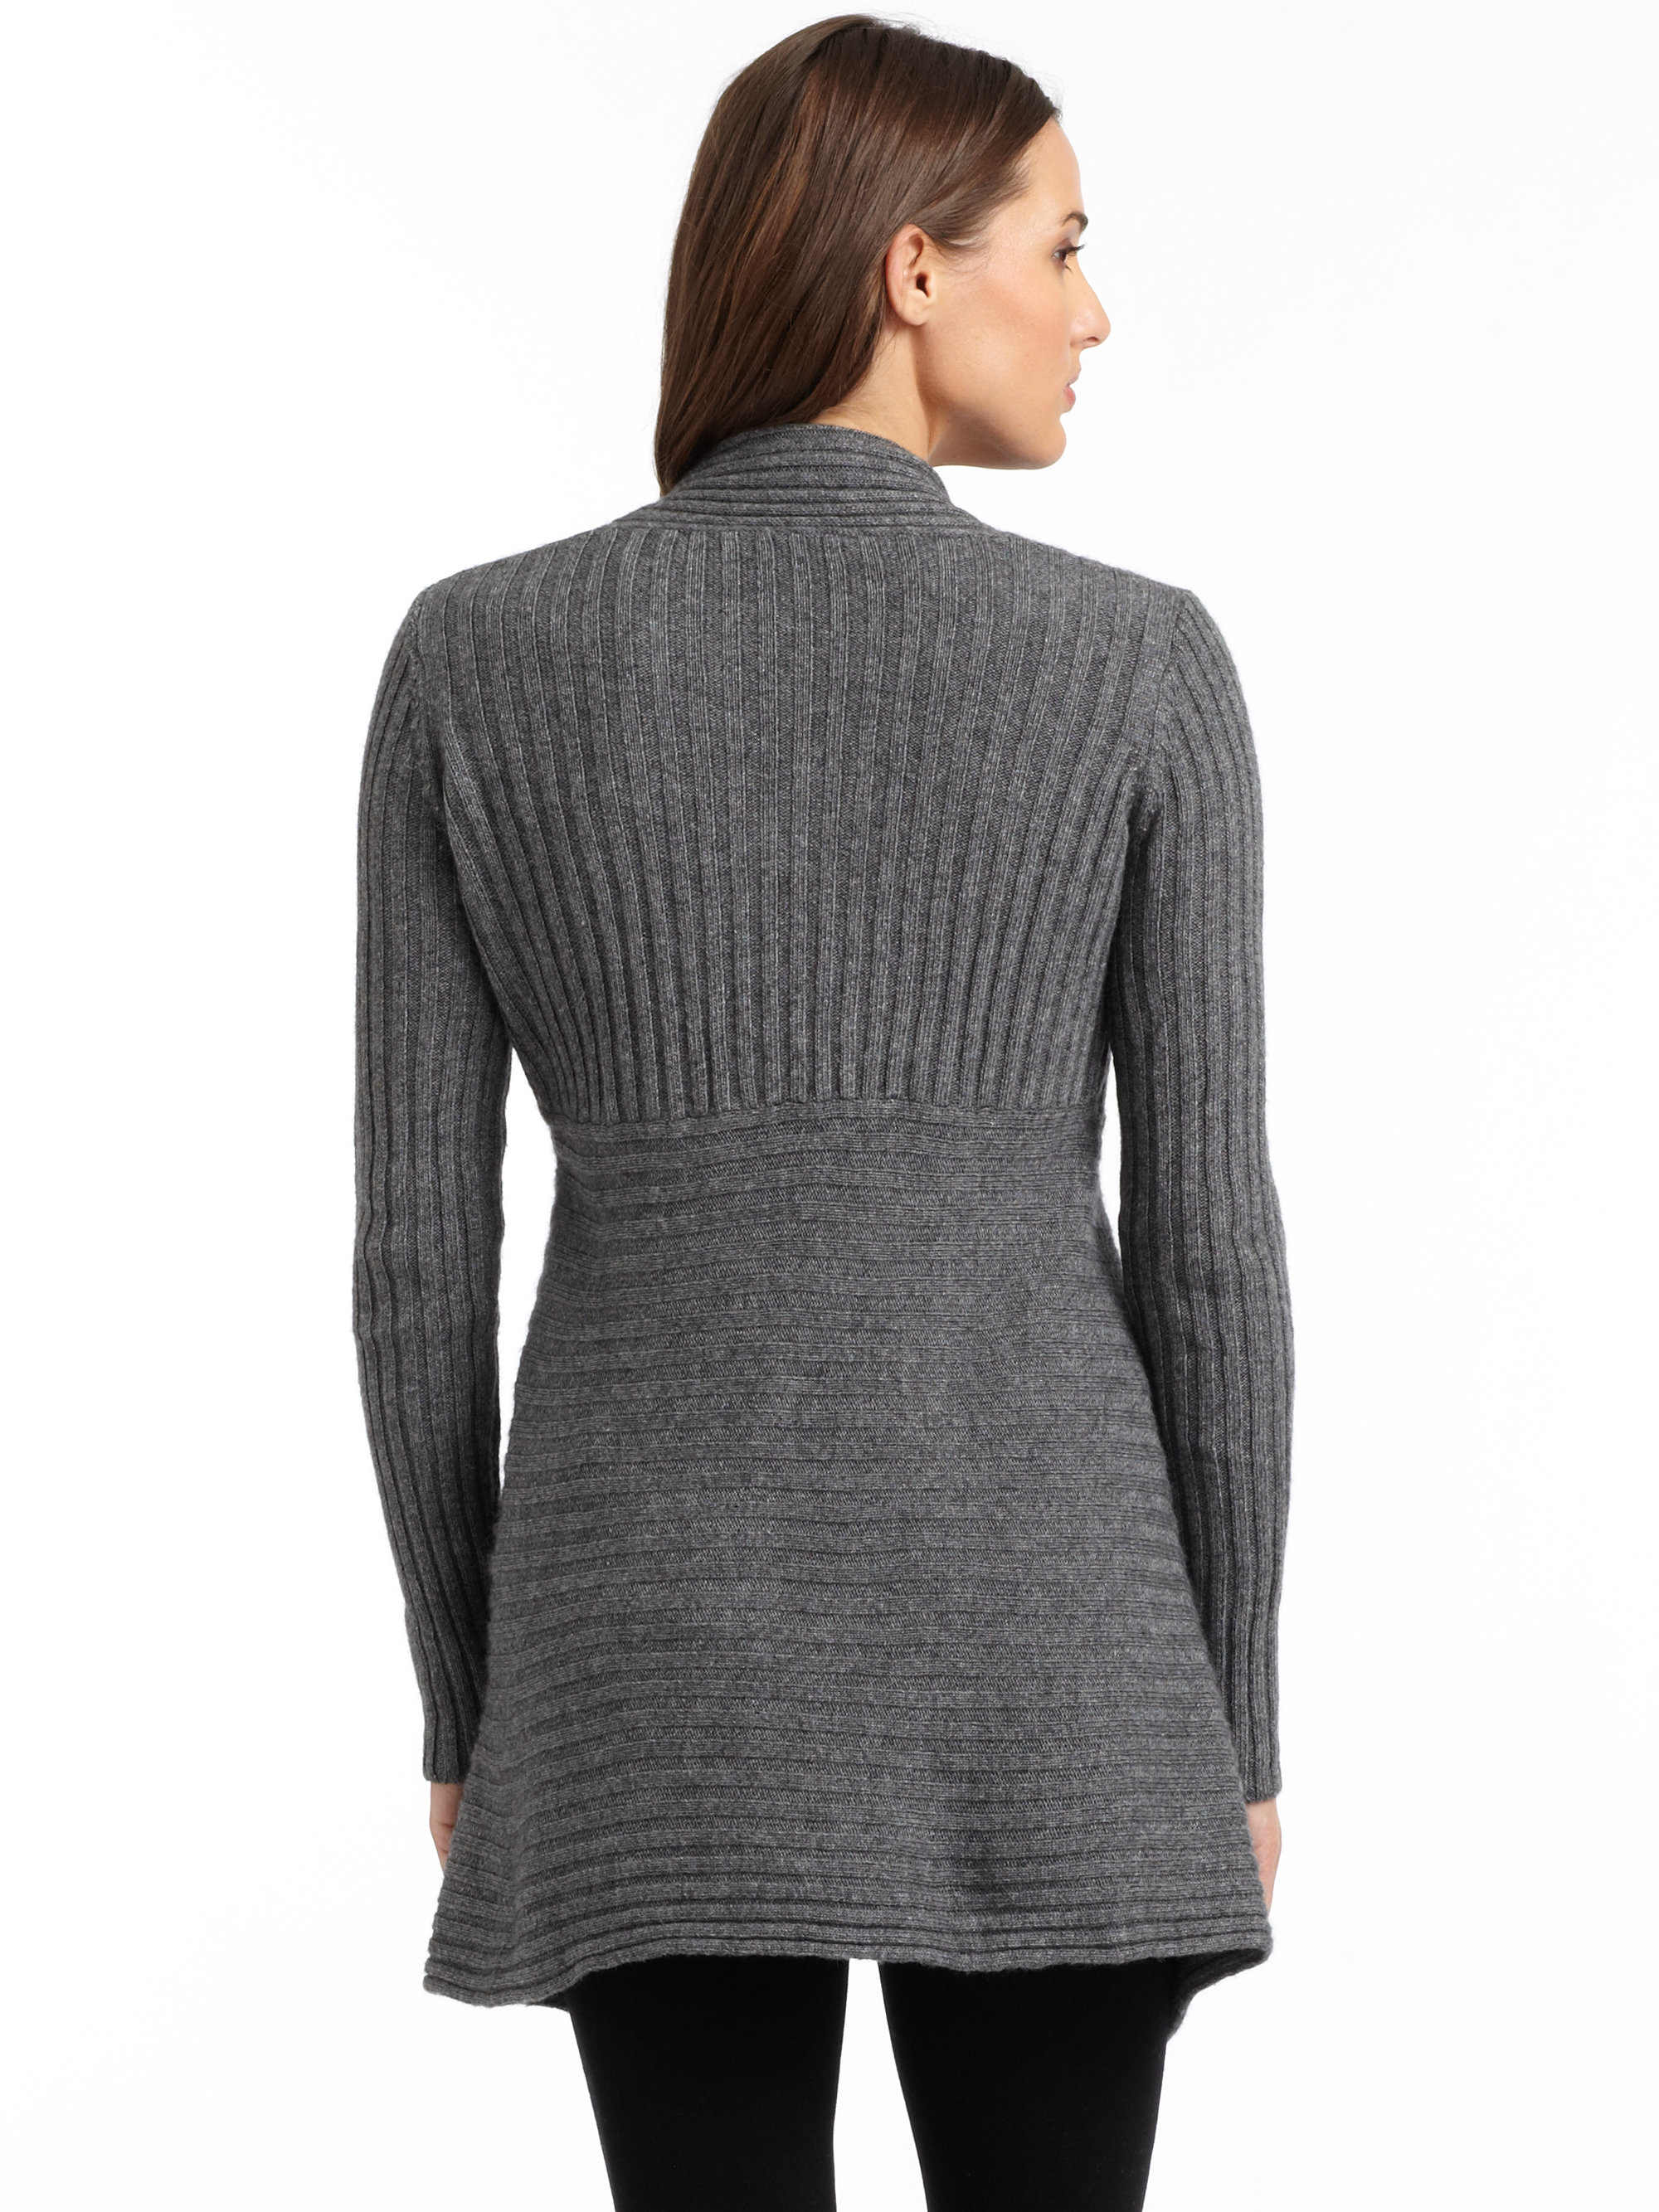 Autumn cashmere New Rib Draped Cardigan in Gray | Lyst